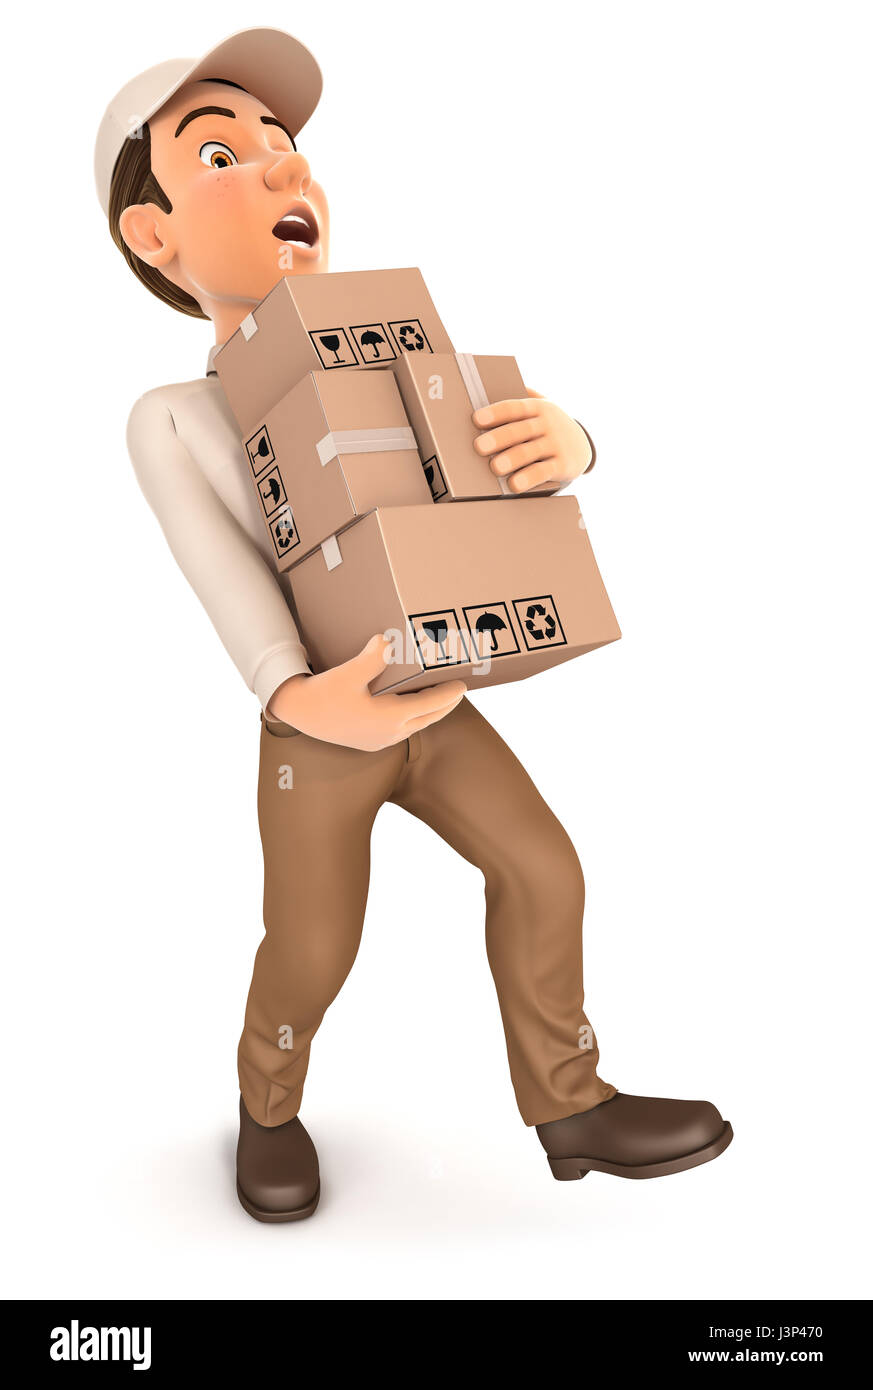 3d delivery man overworked, illustration with isolated white background Stock Photo